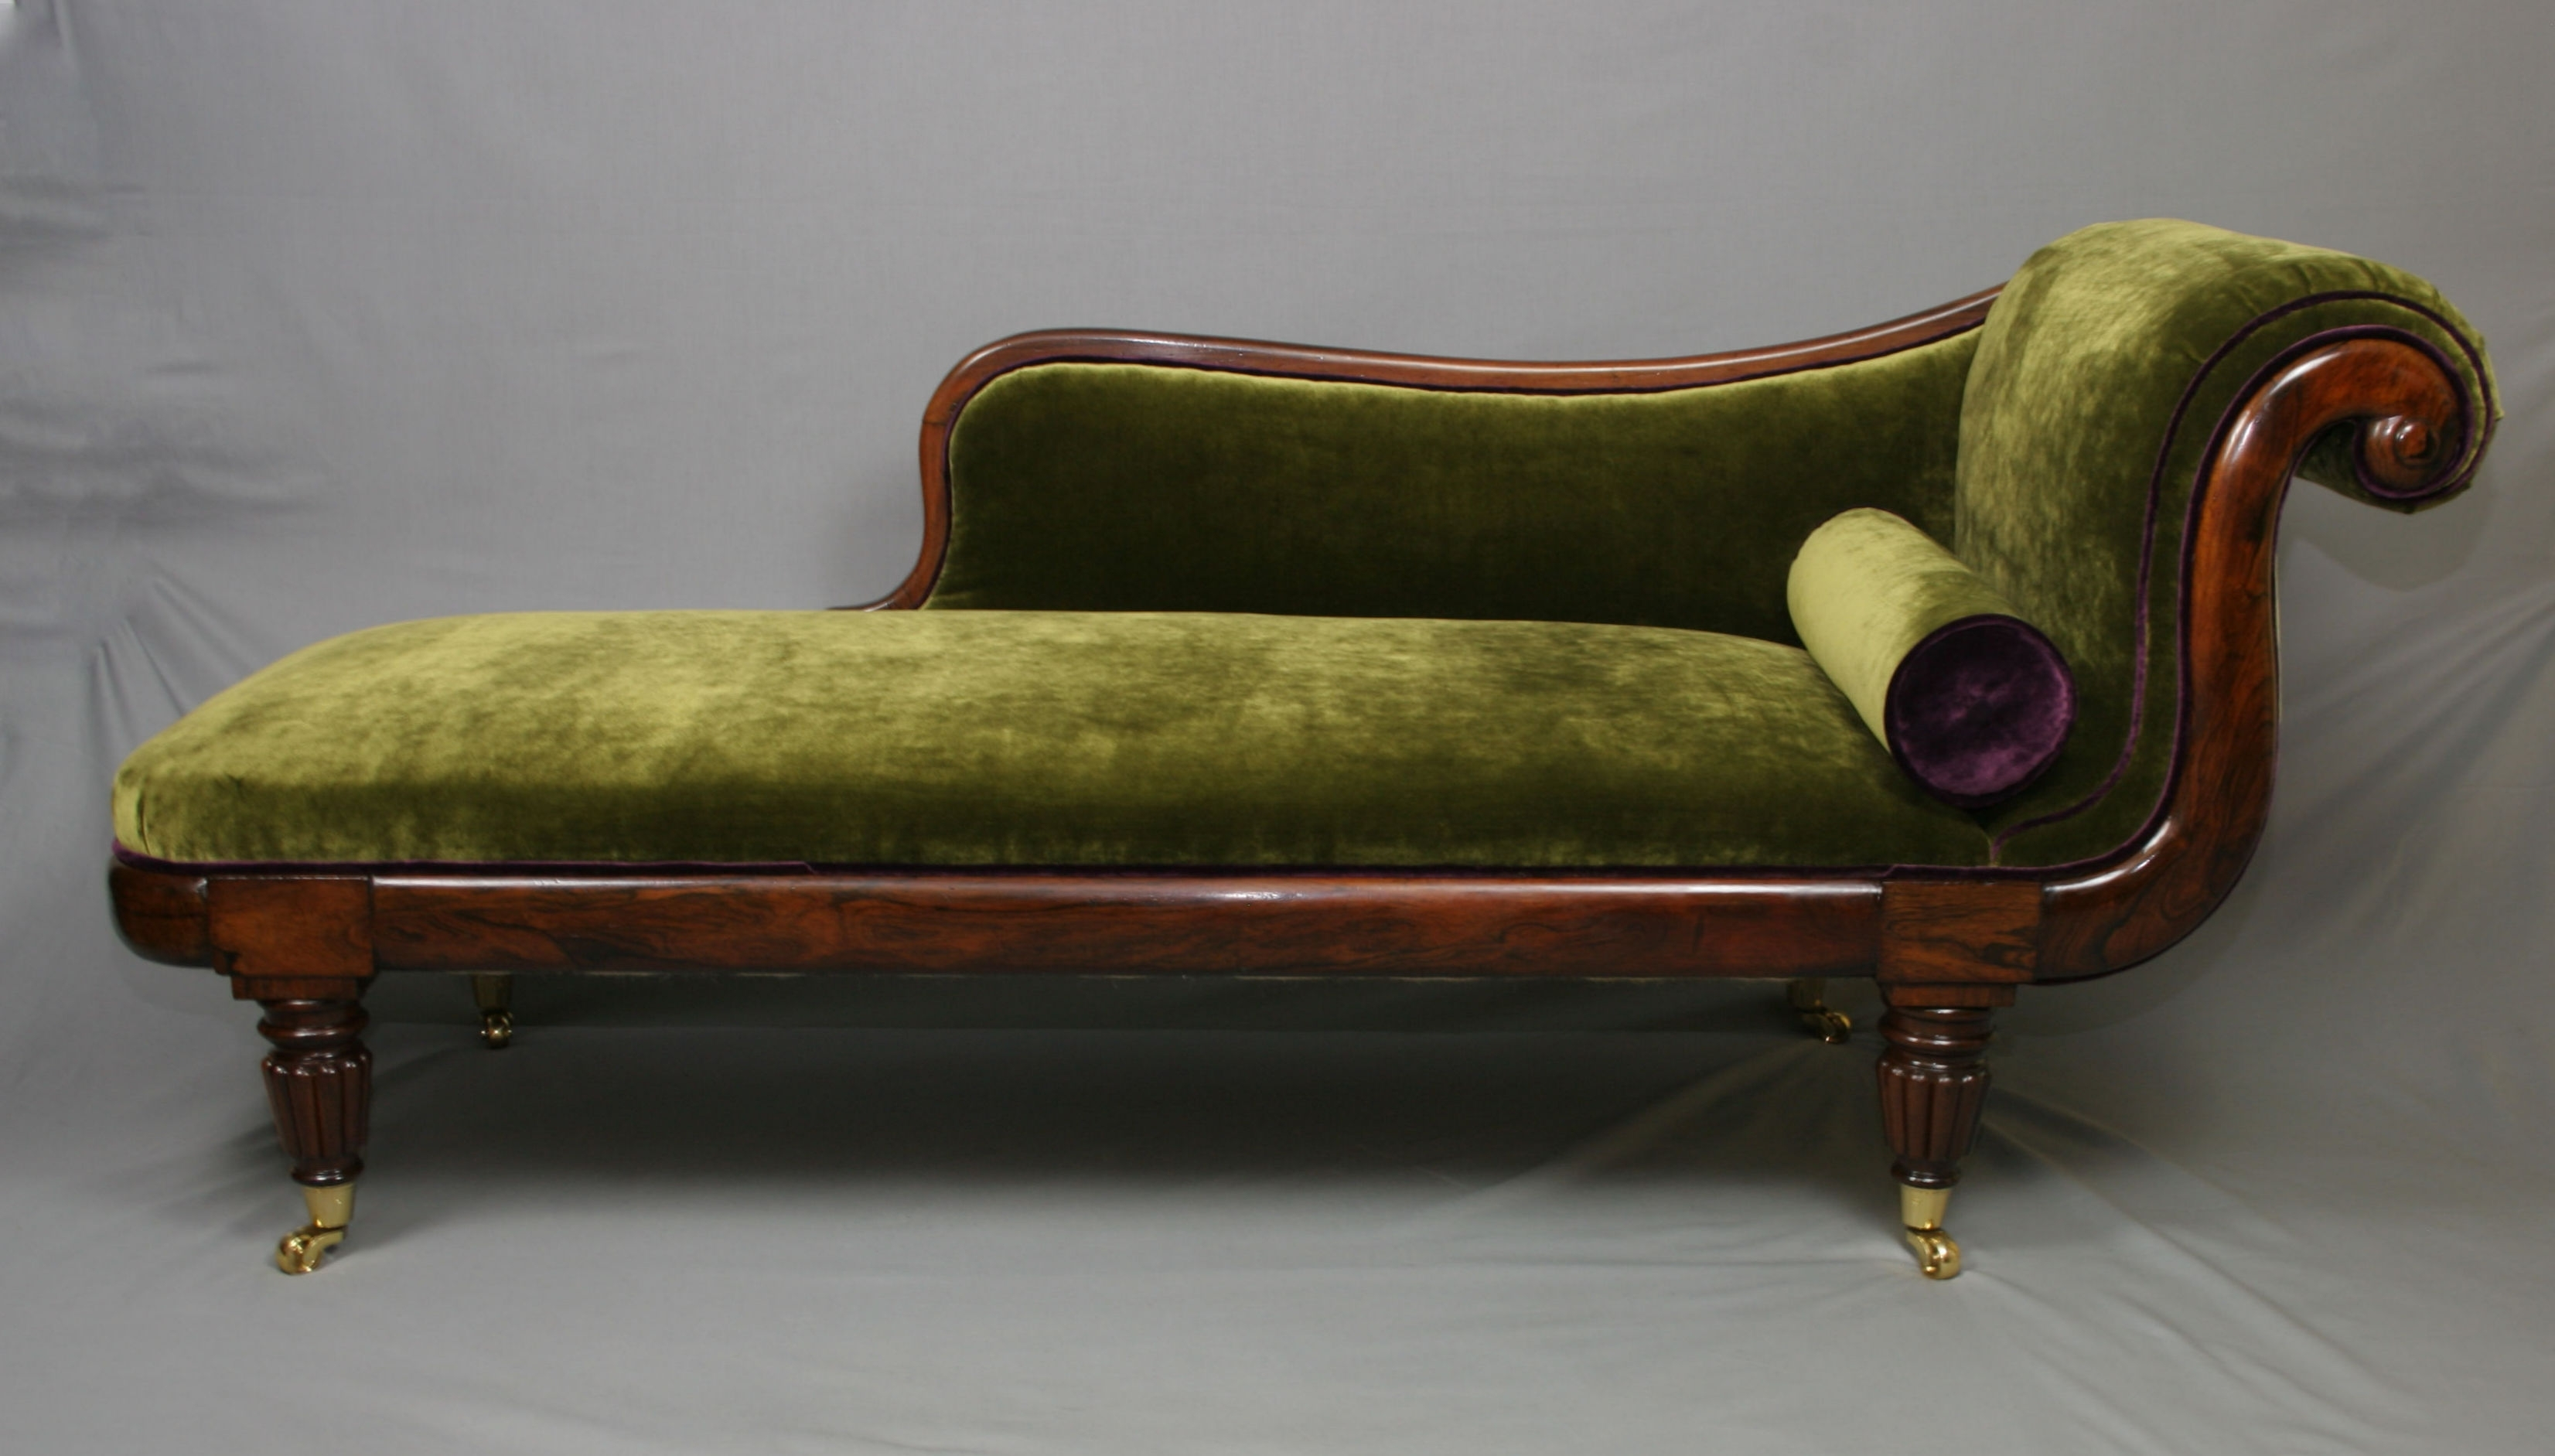 Reviravoltta Throughout Antique Chaise Lounges (View 14 of 15)